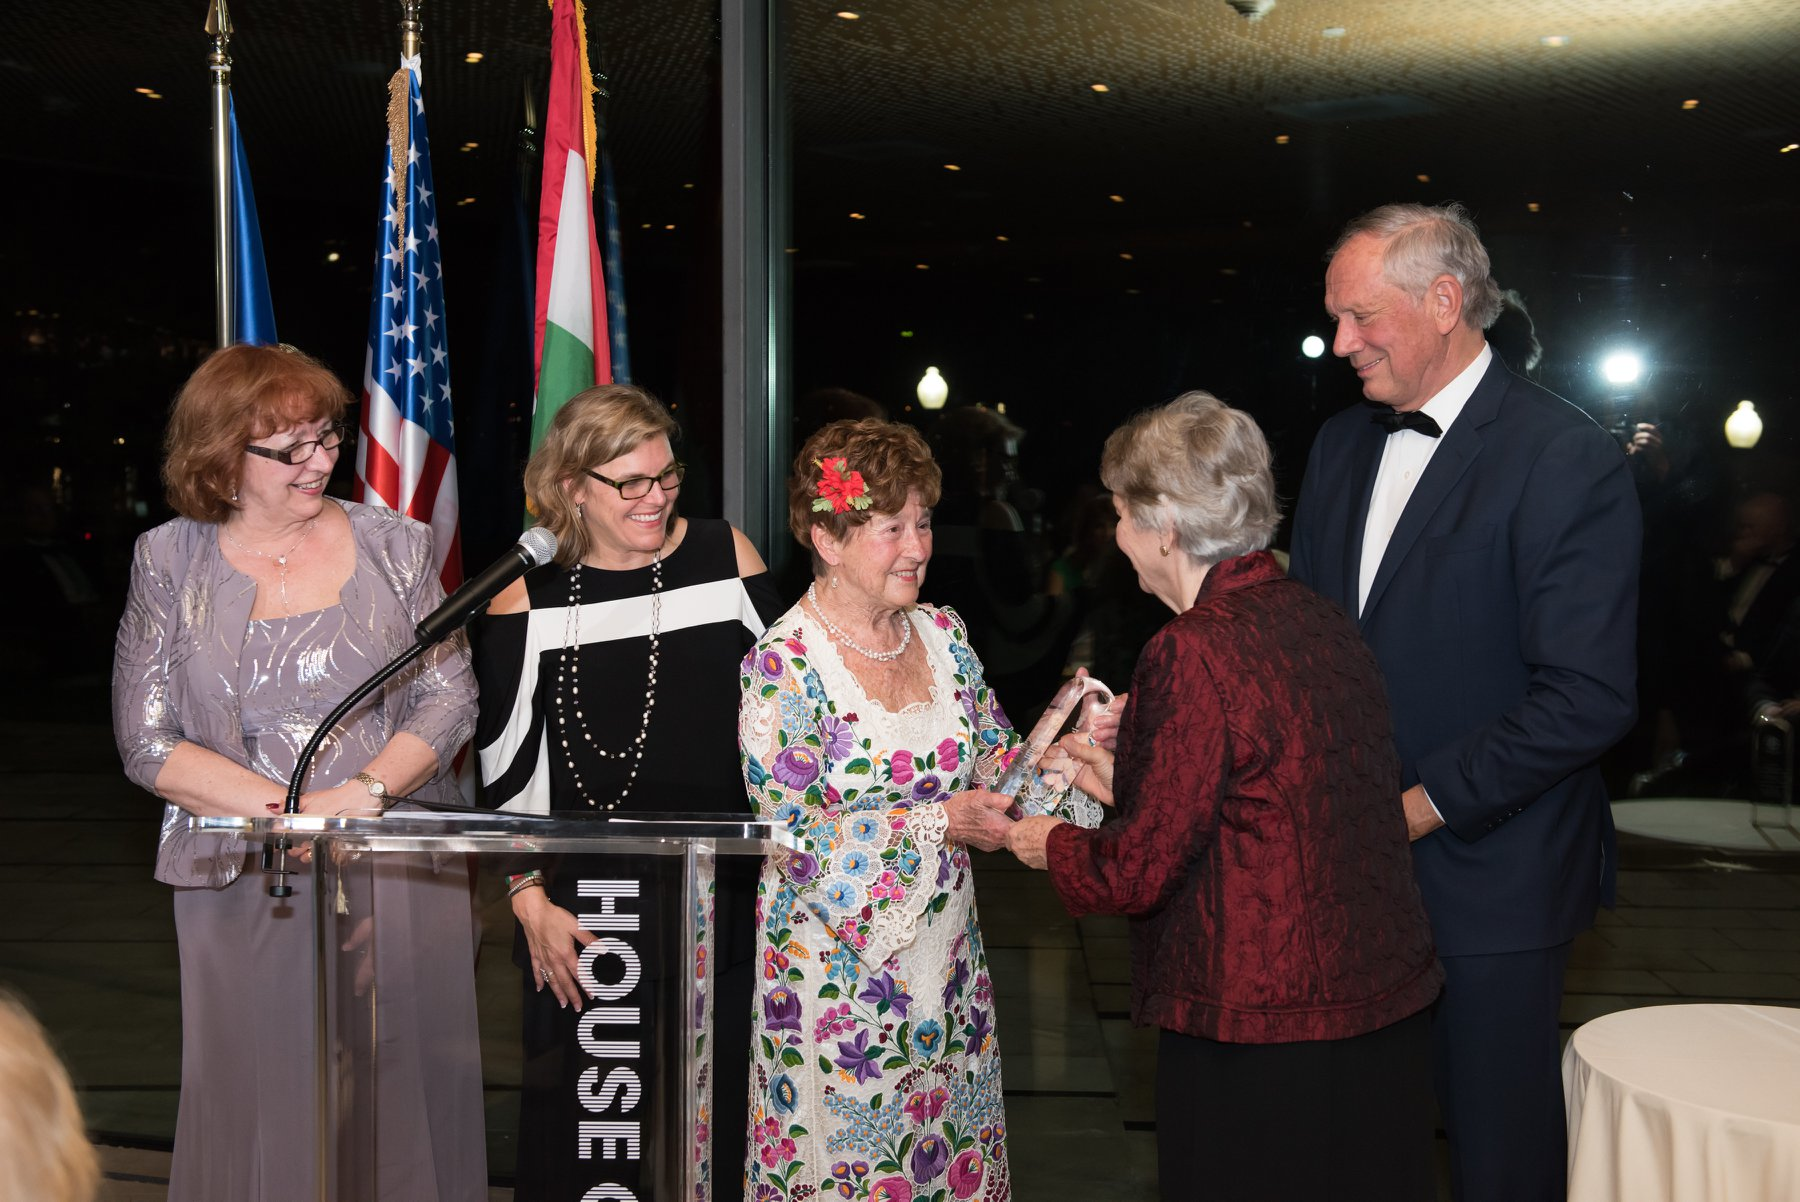 Edith K. Lauer, Chair Emerita of the Coalition hands Dr. Jenny Brown the Coalition award. Gala co-Chair Governor George E. Pataki, Andrea Lauer Rice, HAC President and Dr. Agnes Virga, HAC Chairman look on